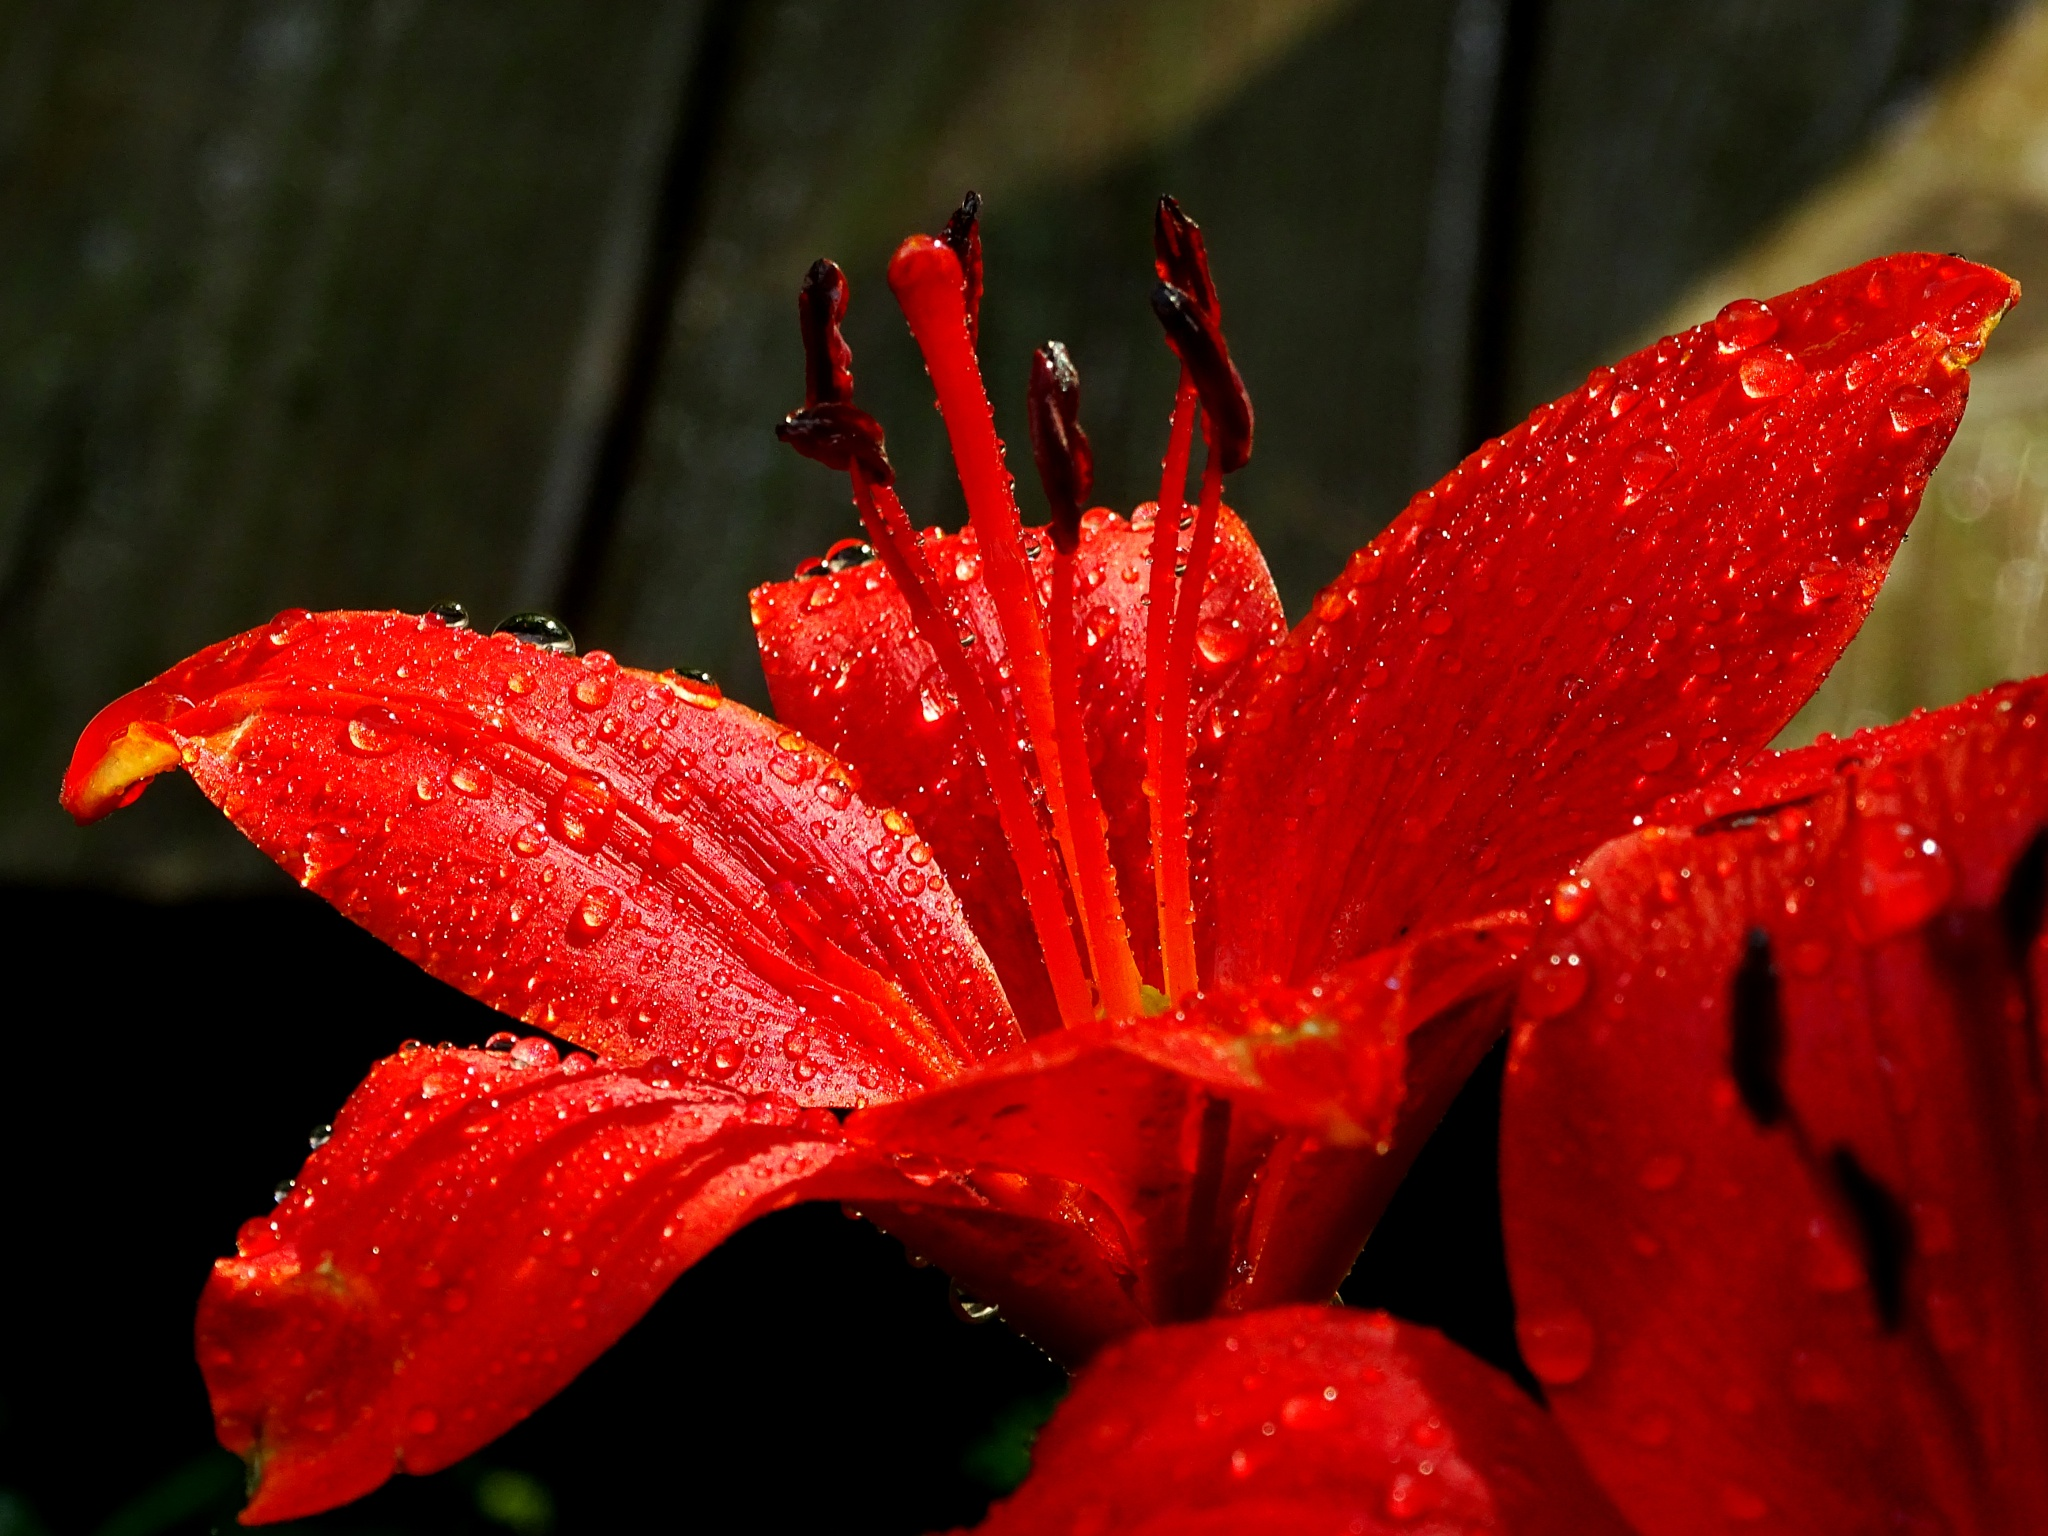 Lily and raindrops by paulette.king